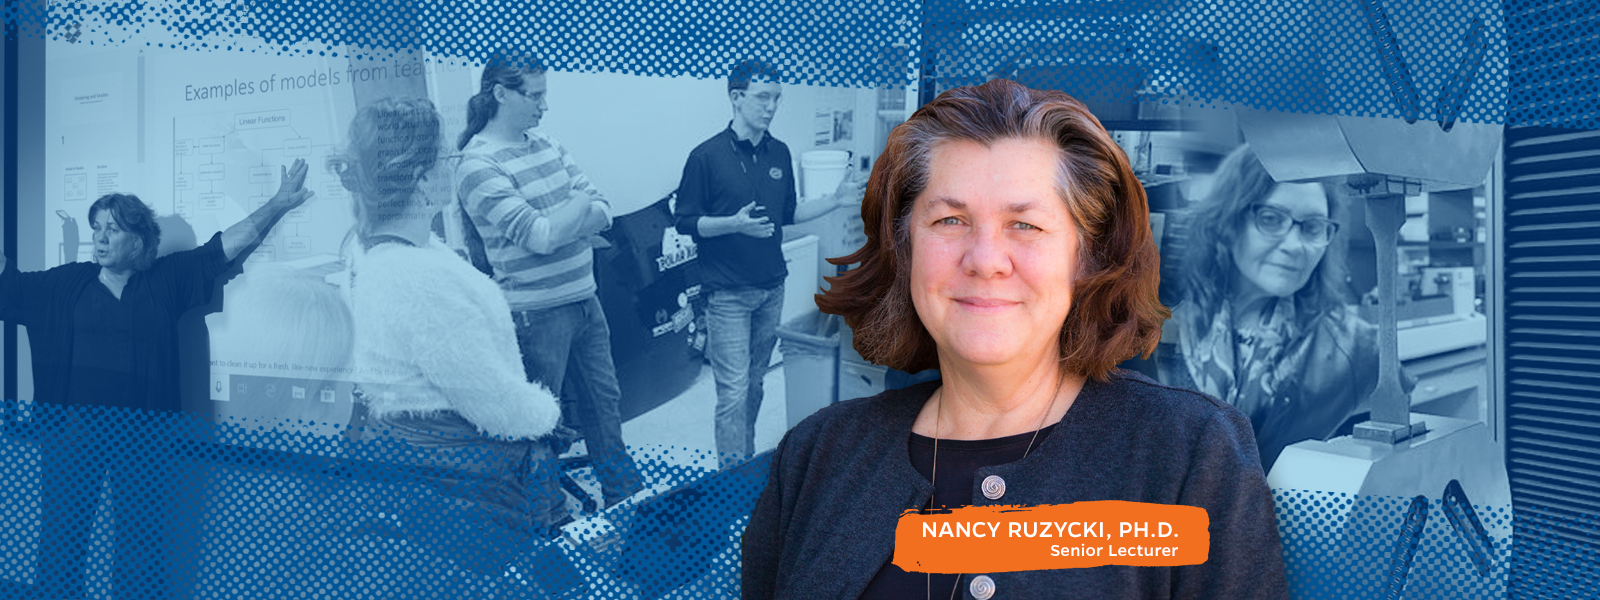 Nancy Ruzycki, Ph.D. EQuIPD Program